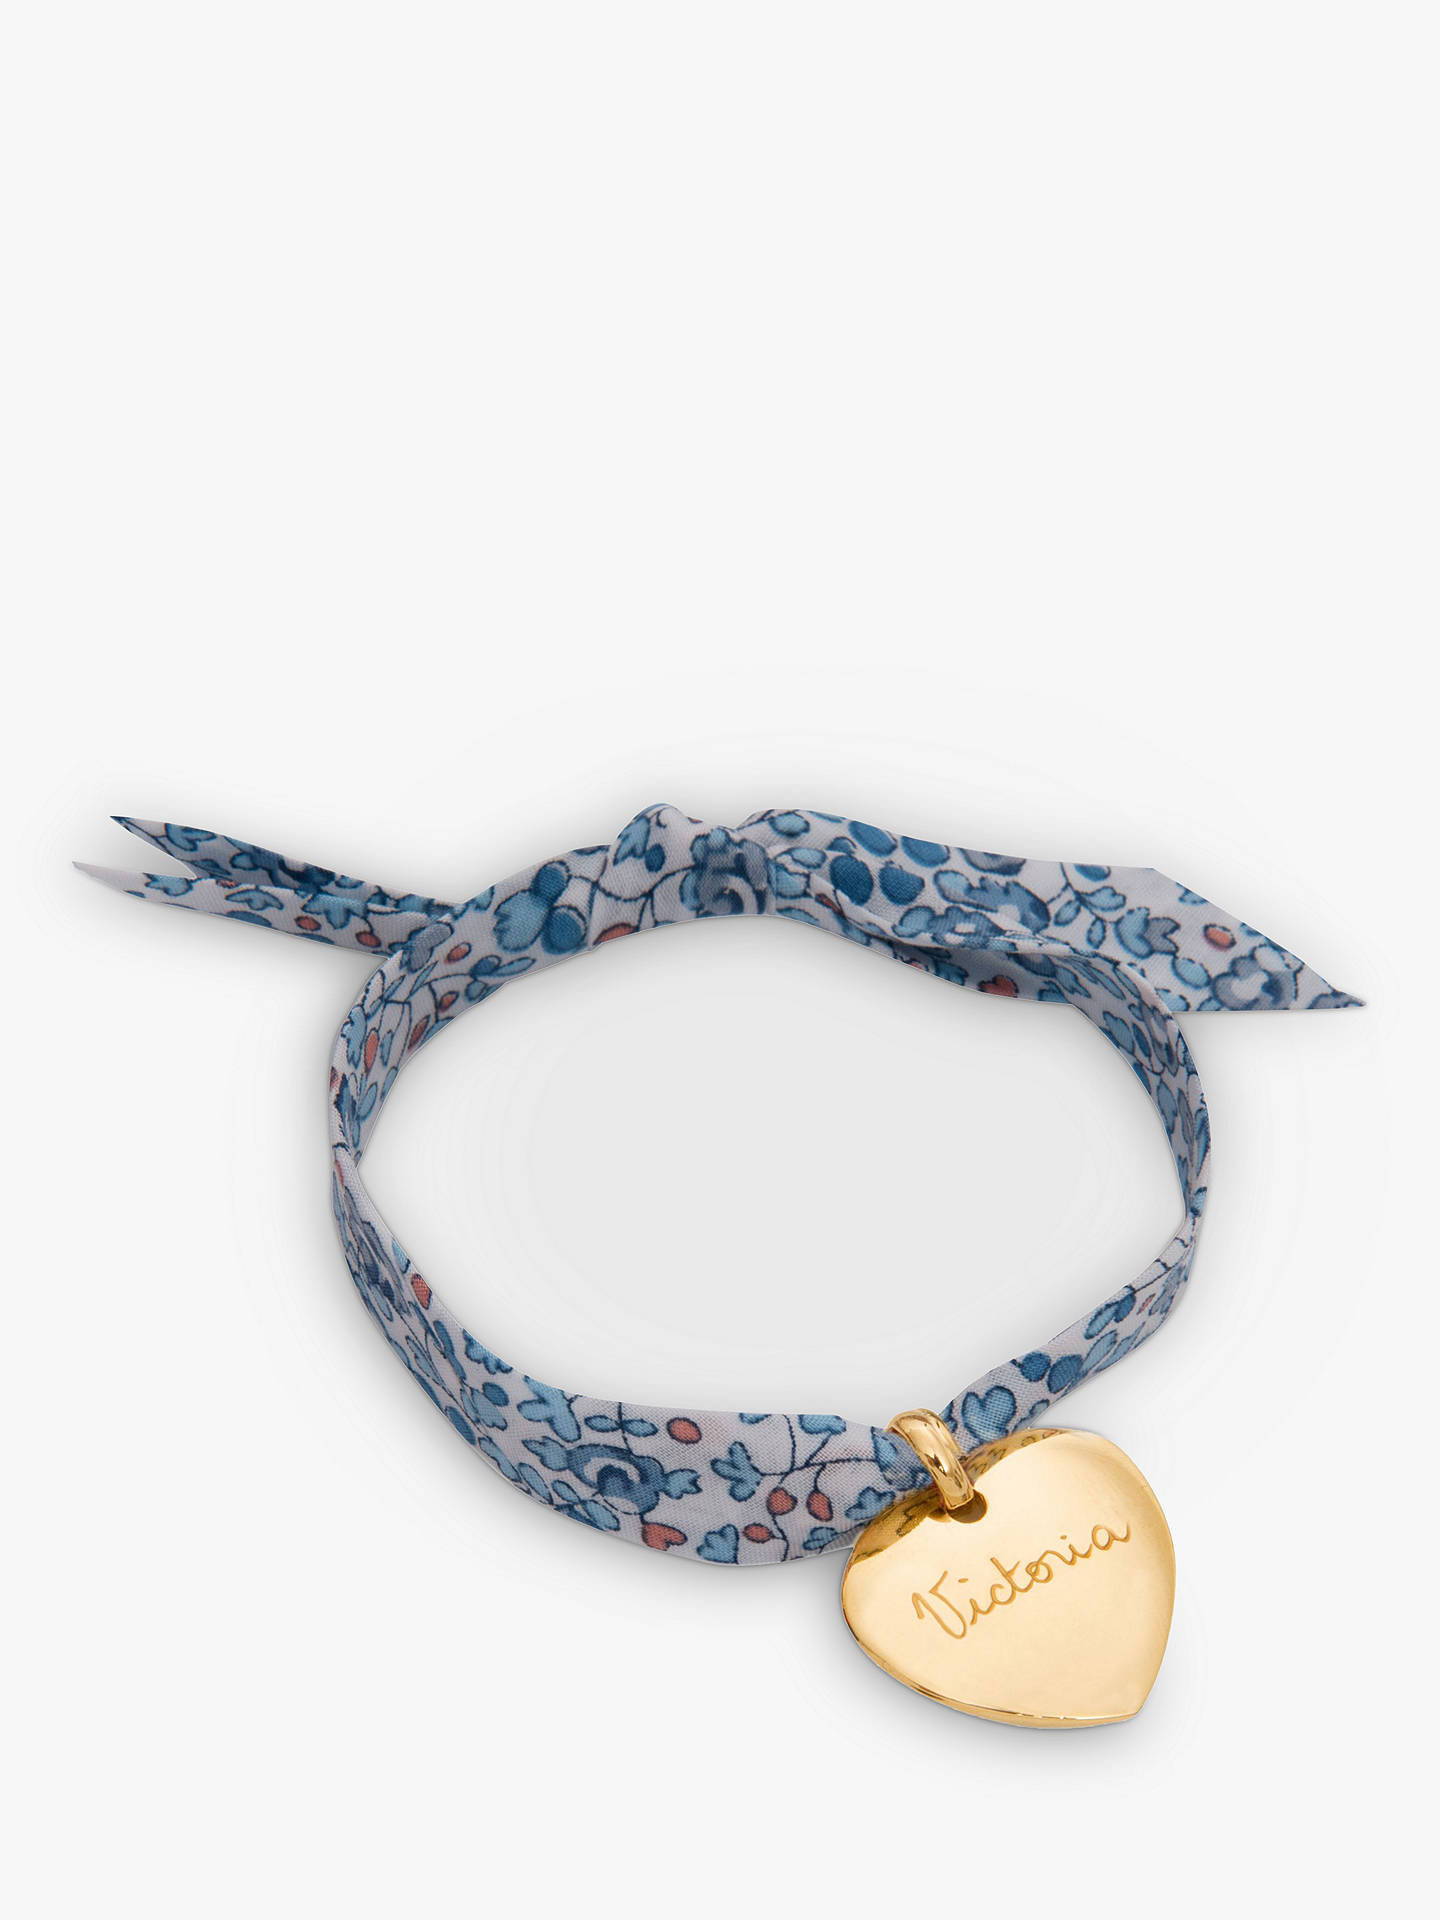 BuyMerci Maman Personalised 18ct Gold Plated Heart Liberty Bracelet, Eloise Blue Online at johnlewis.com